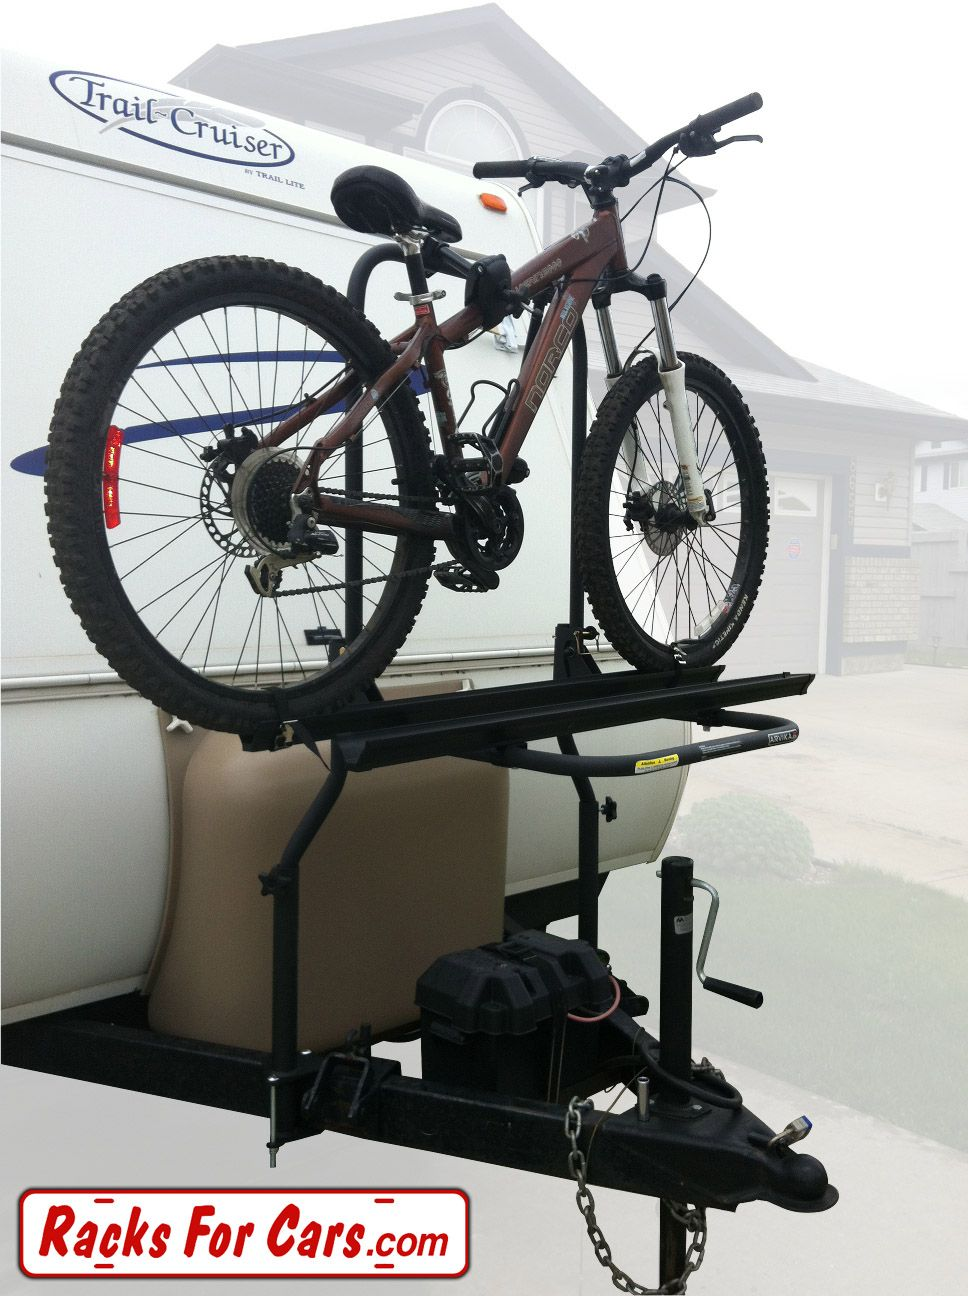 Bike Camper Trailer Arvika 2 Bike Rack On Travel Trailer With Bike Loaded Left View